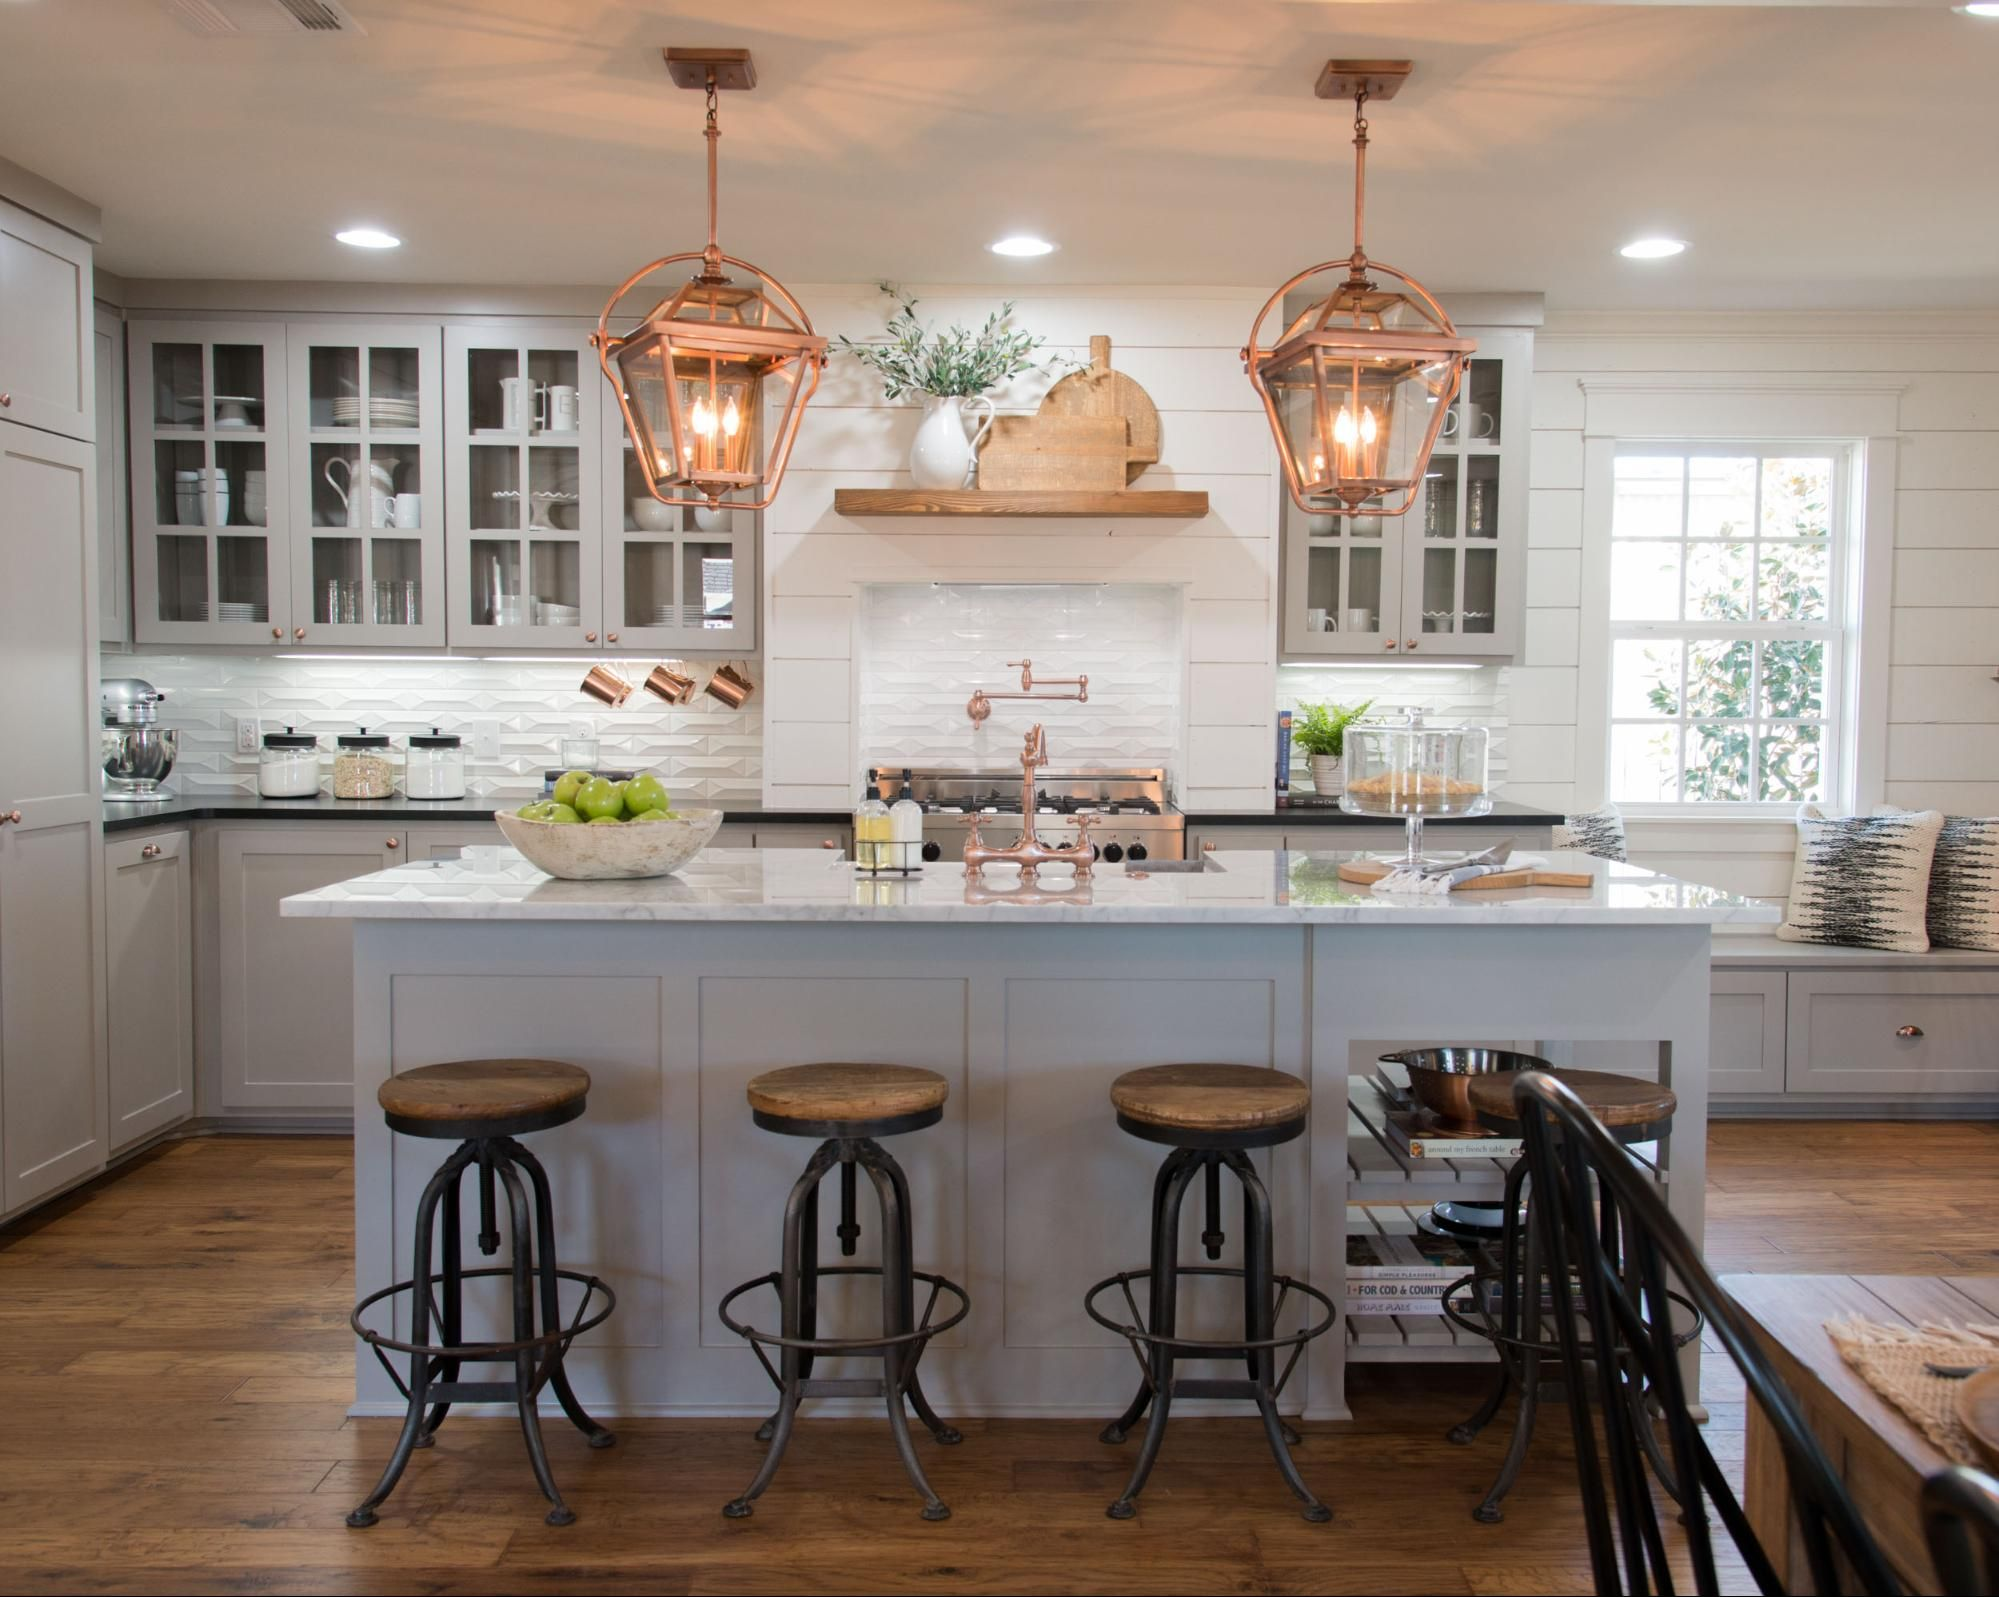 Fixer Upper Copper Light Fixture Gray Kitchens And Magnolia Farms - Joanna gaines kitchen light fixtures